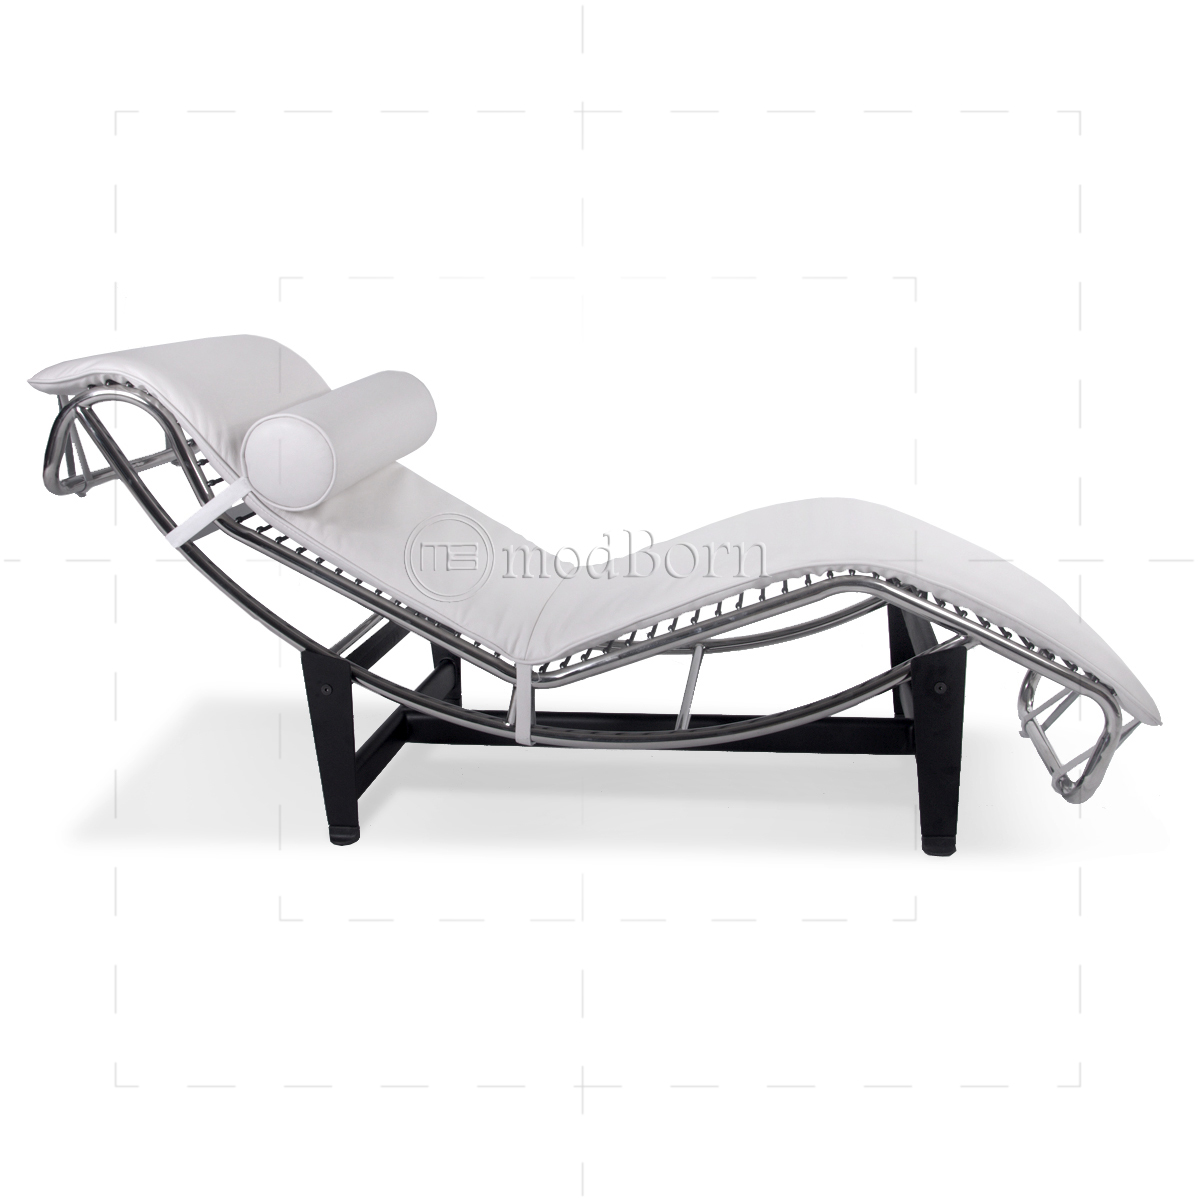 Le corbusier style lc4 chaise longue white leather replica for Chaise longue de le corbusier